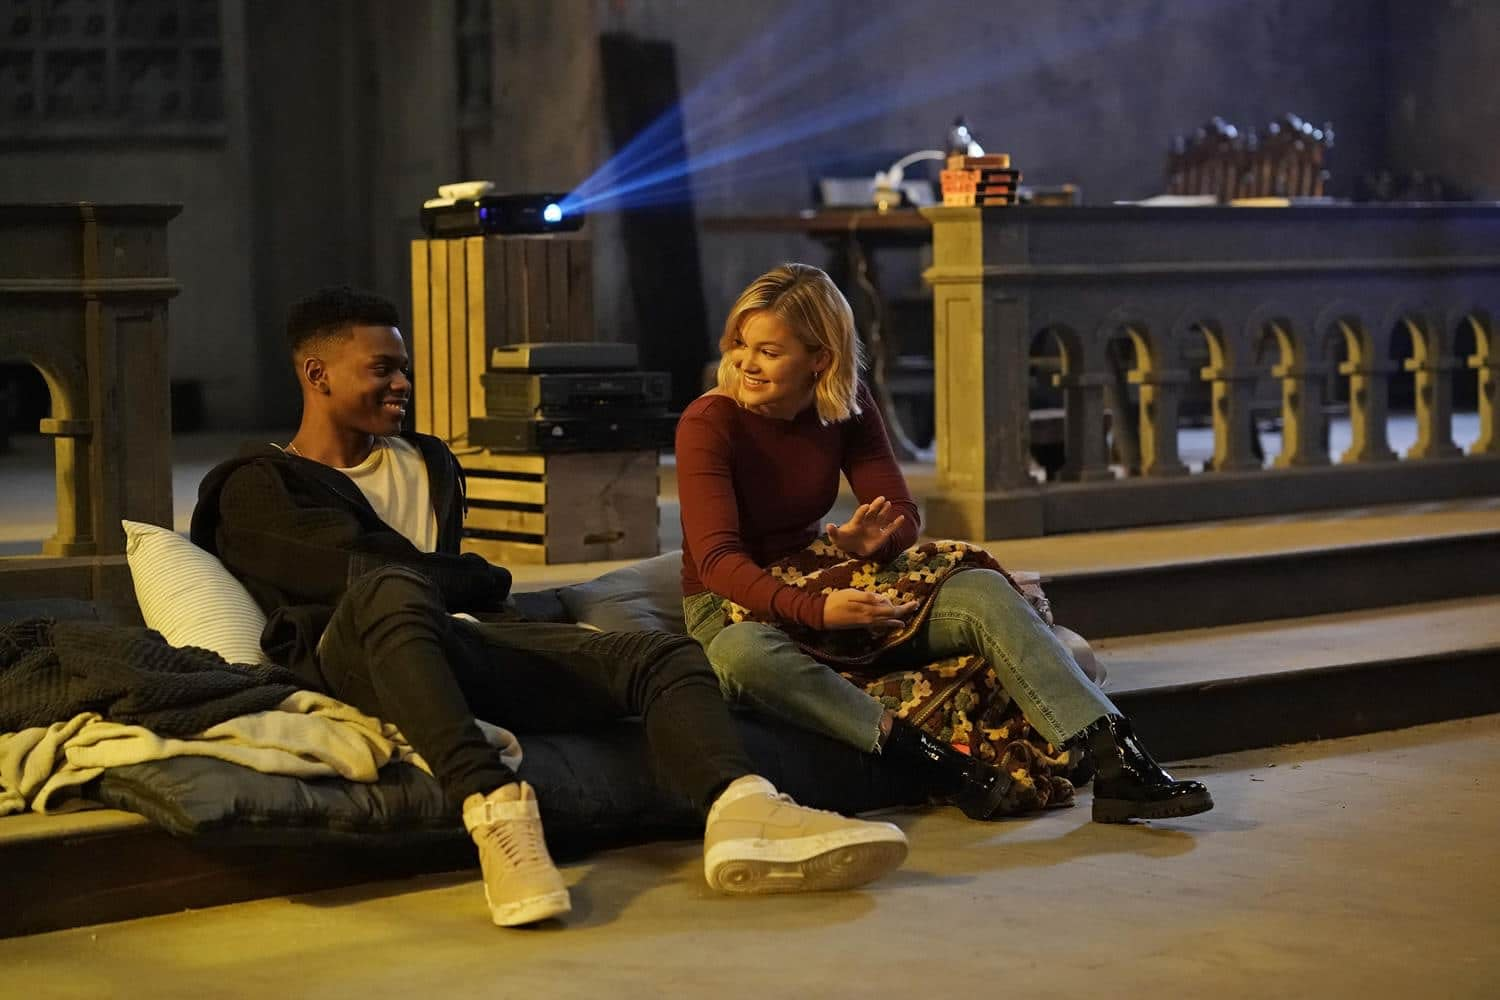 Cloak and Dagger Season 2: Some Story Details and 4 New Images